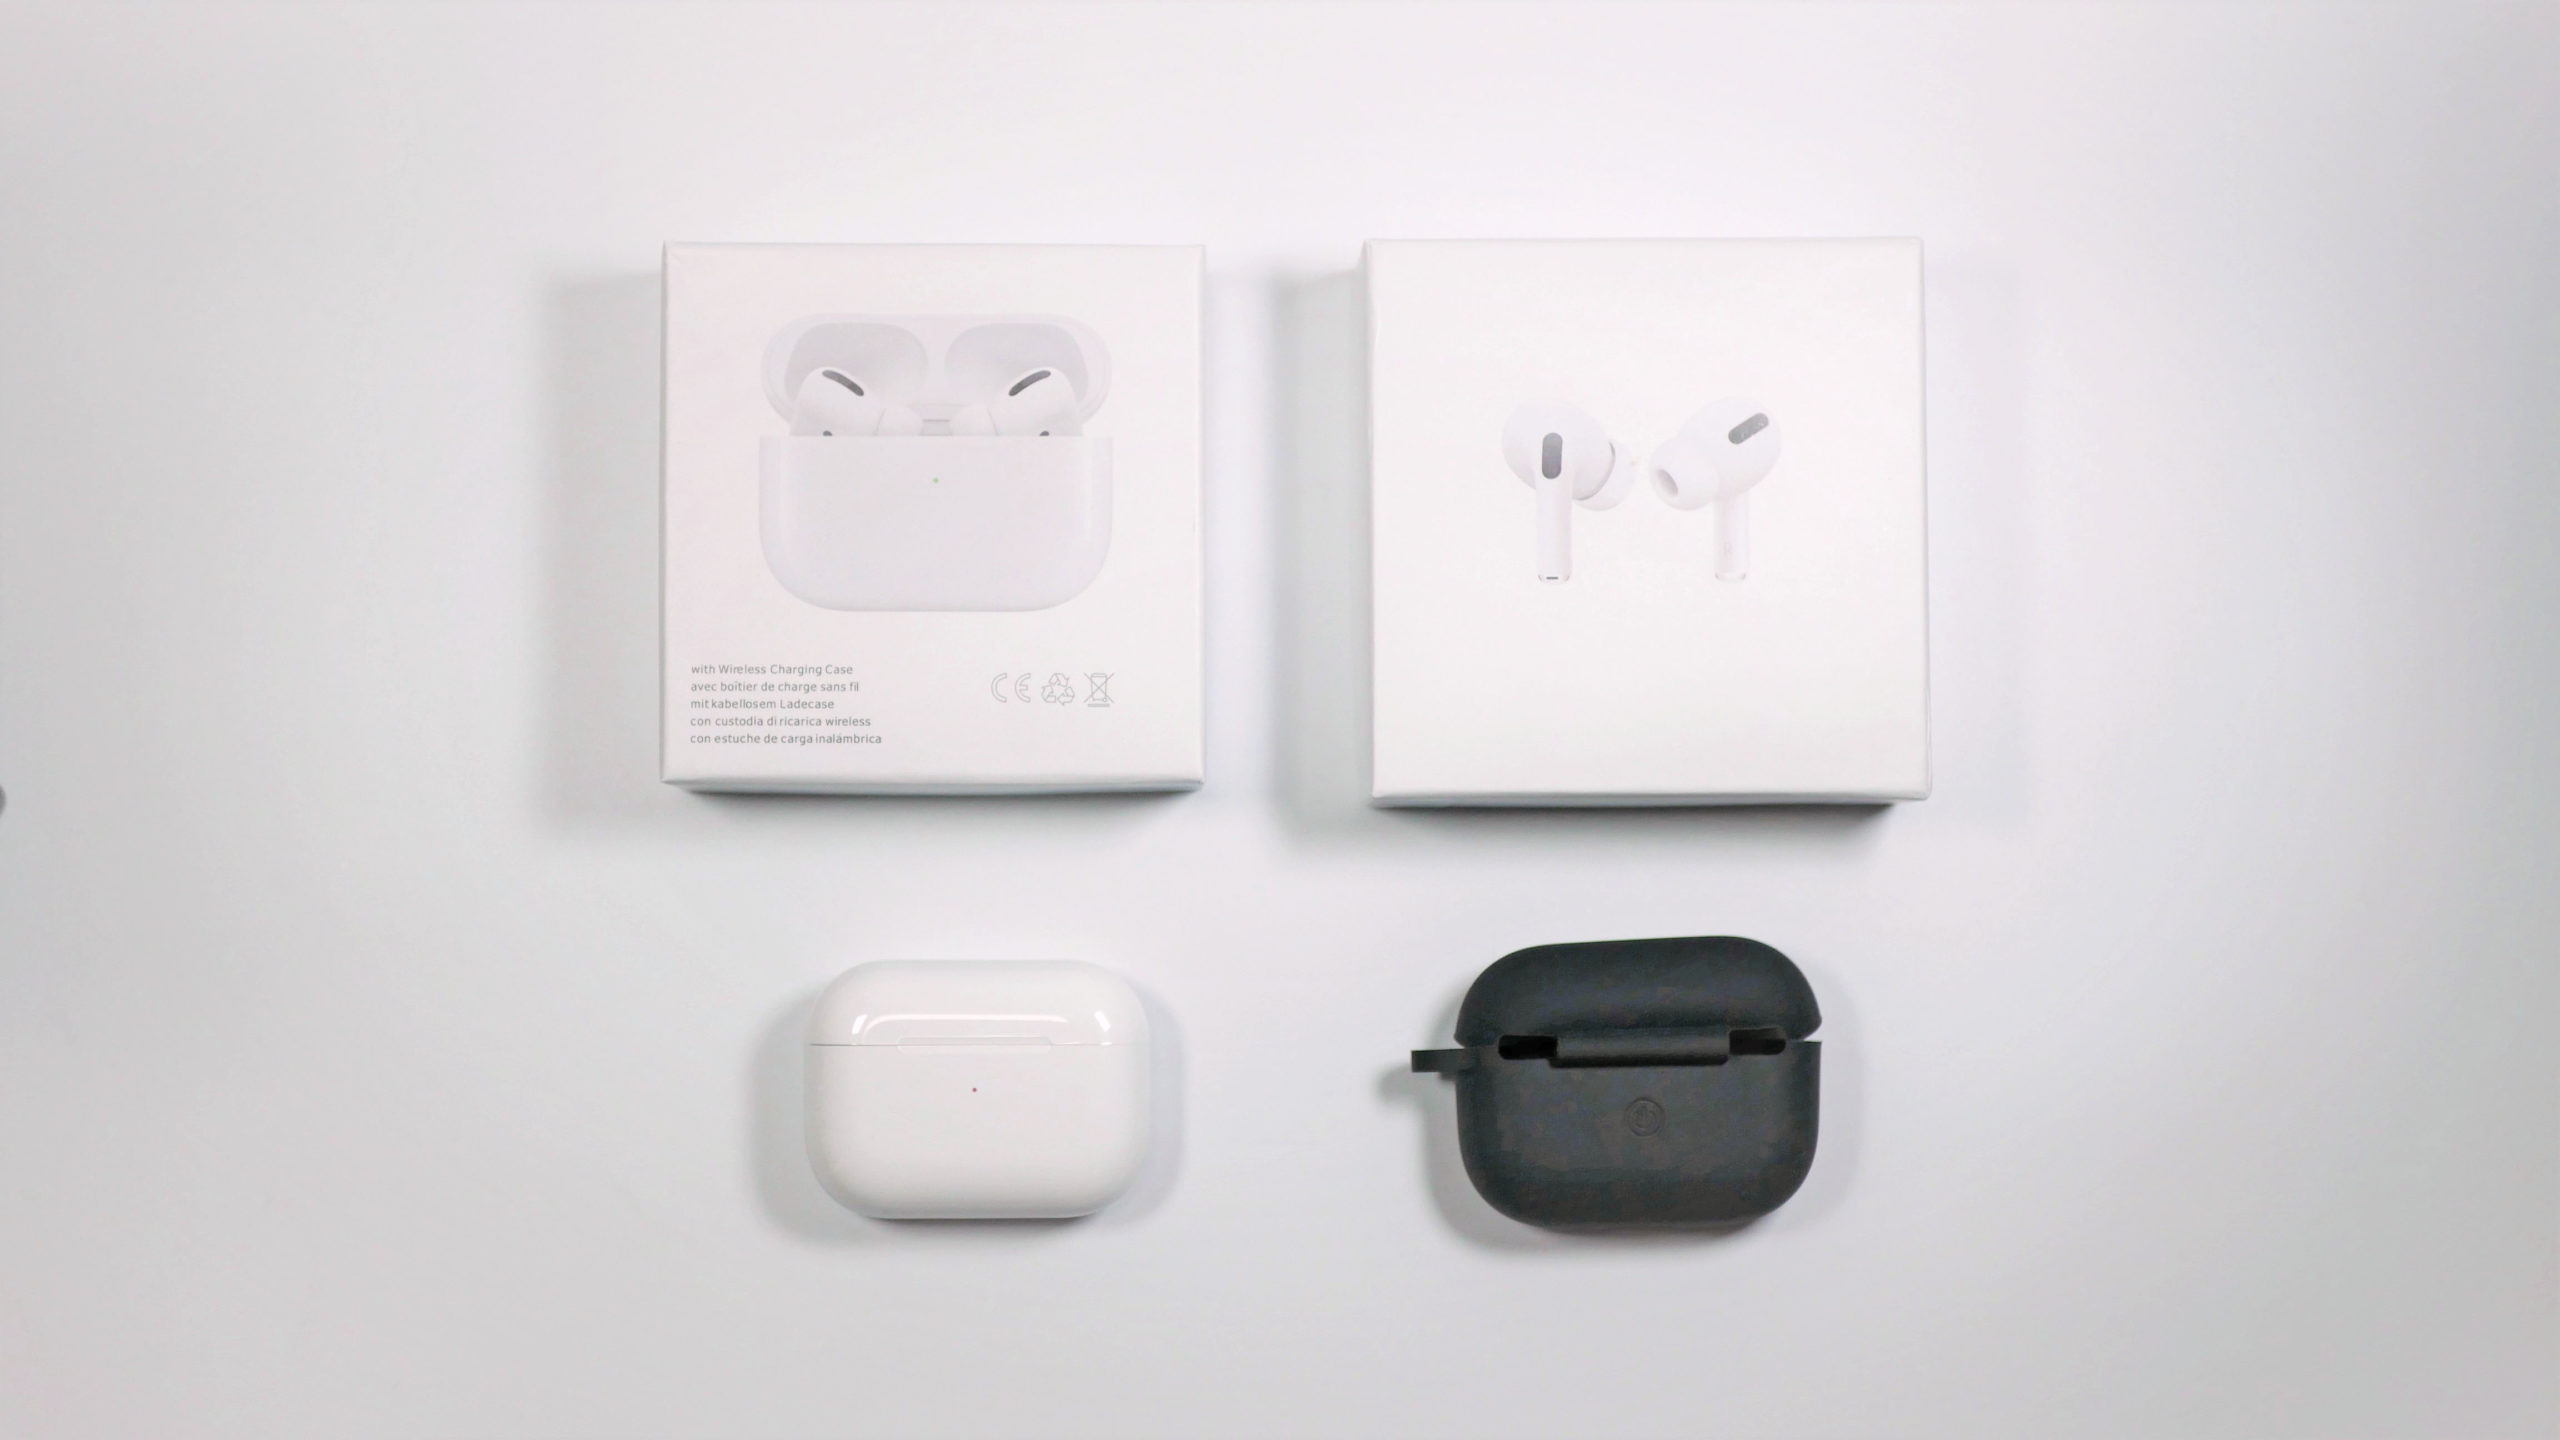 Airpods pro風 イヤホン